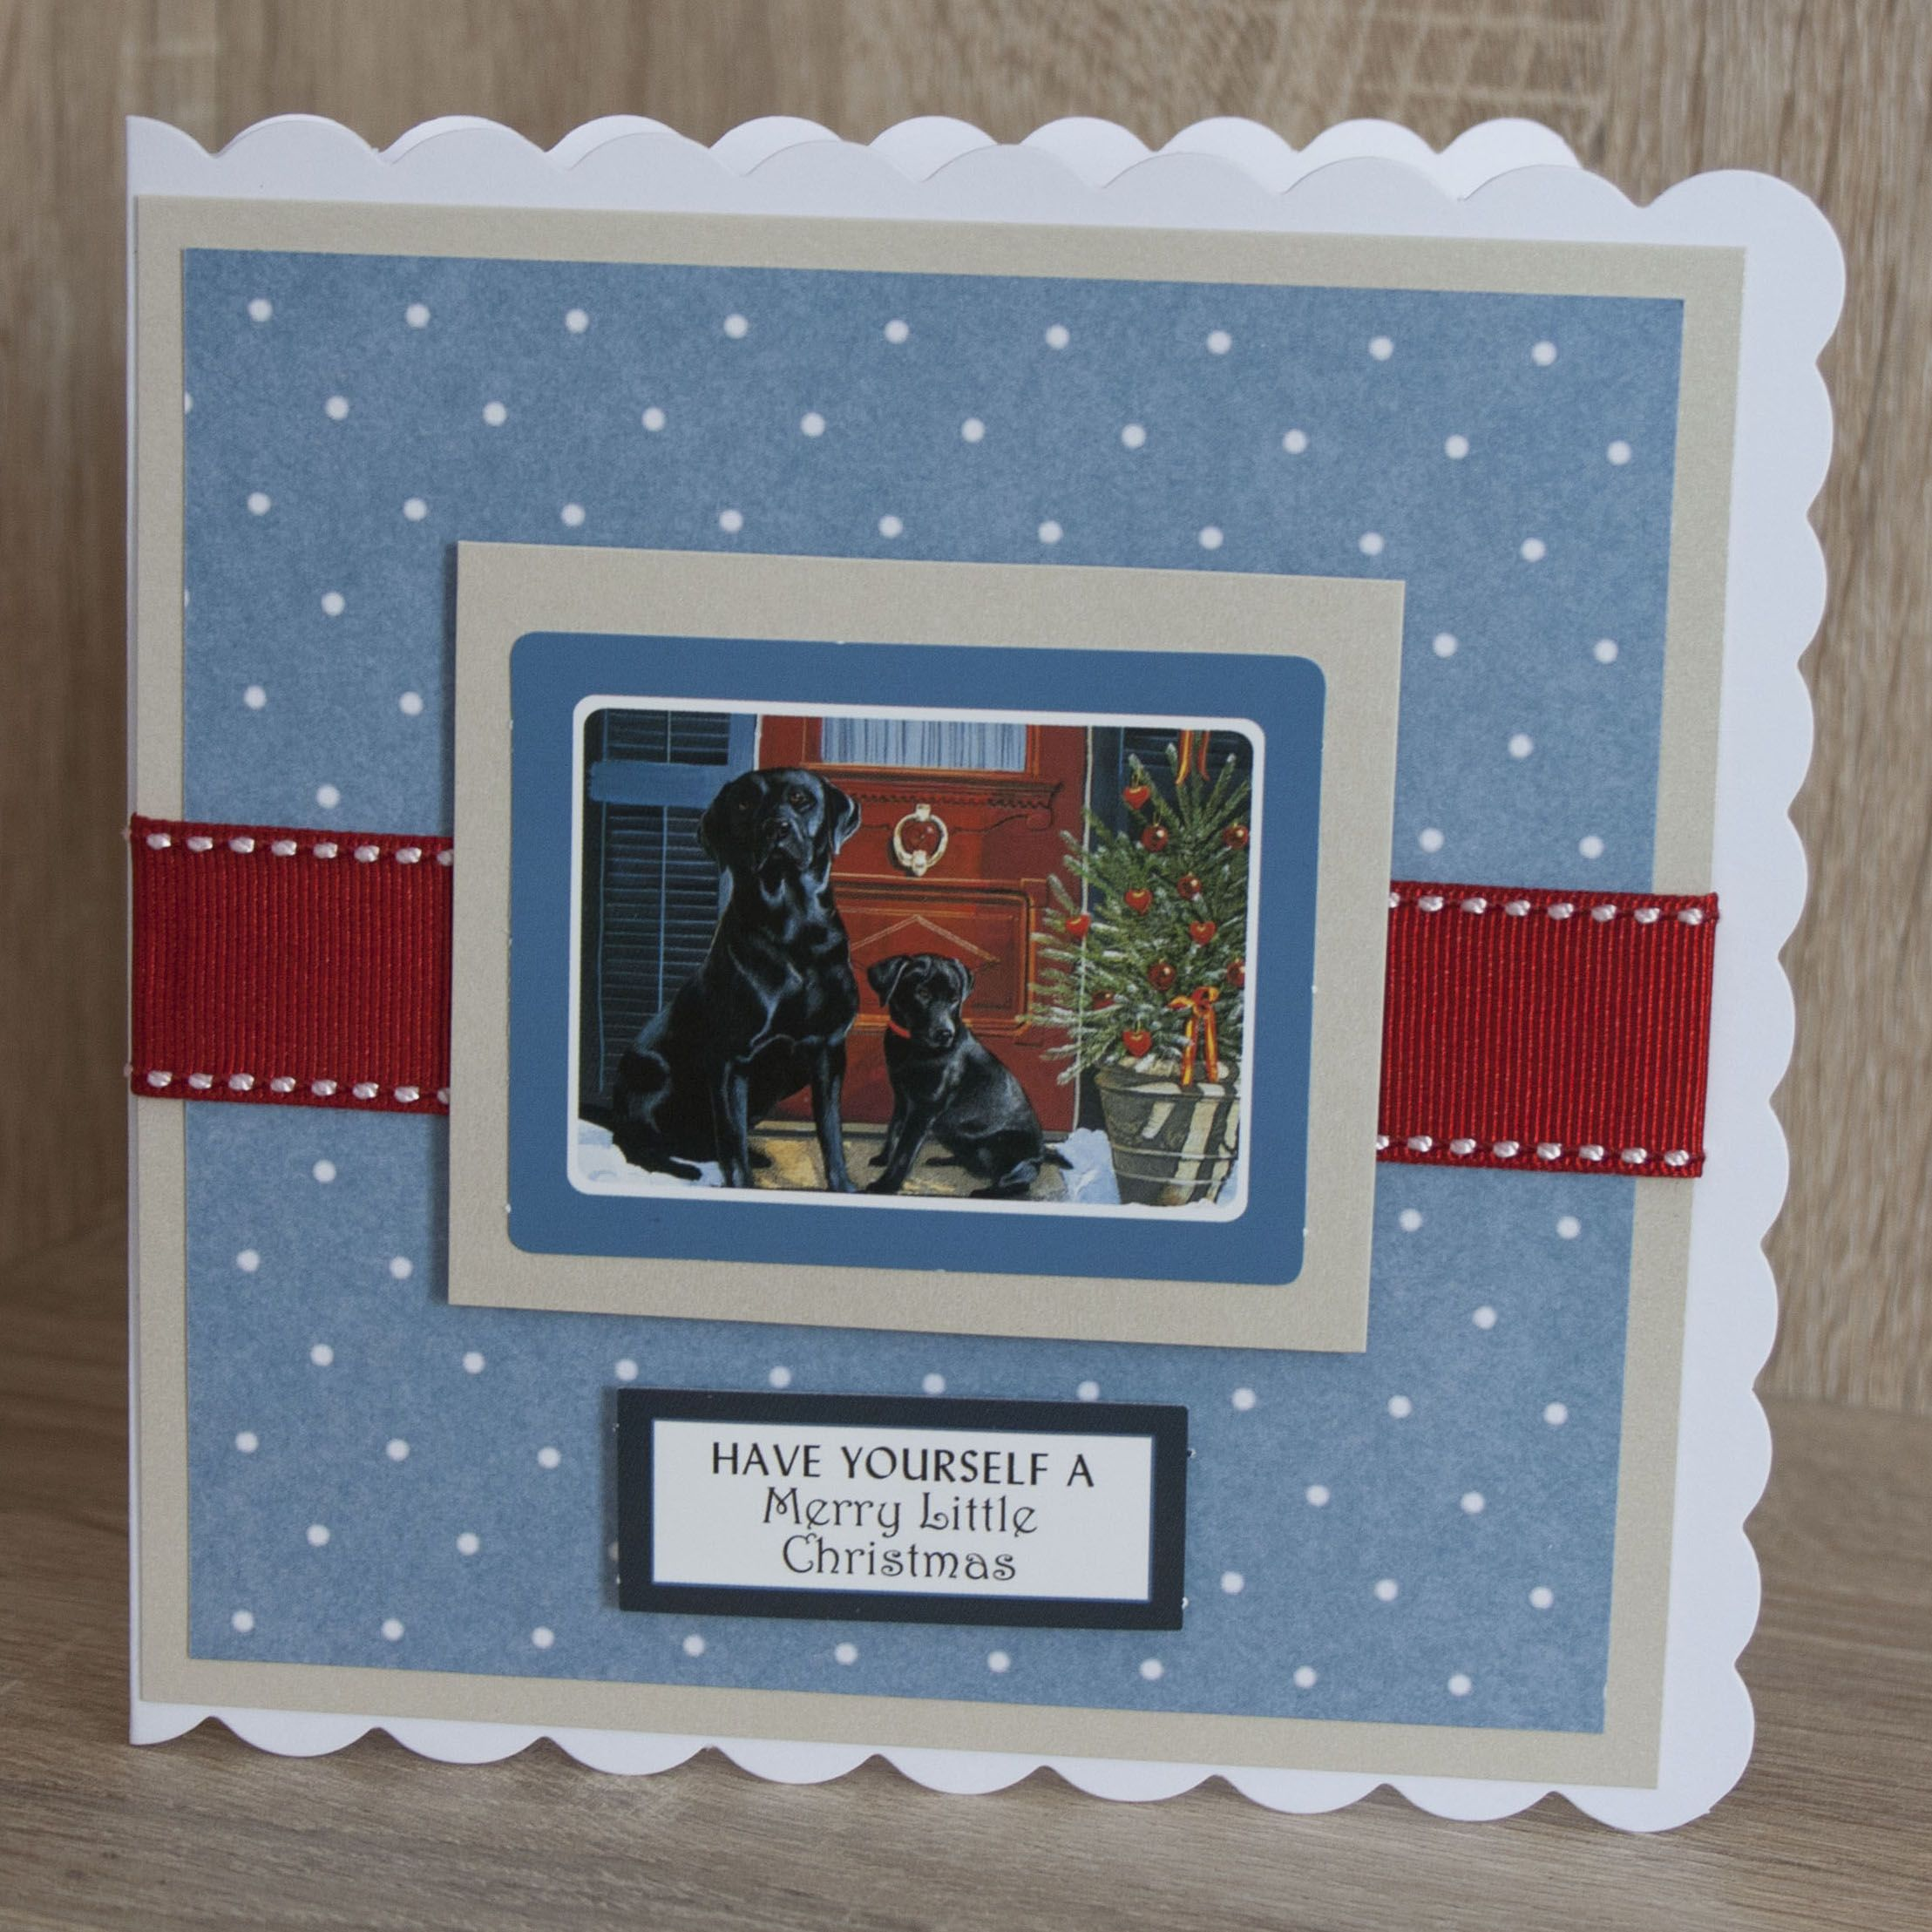 Handmade Christmas Card Made With Moments By Pollyanna Pickering Cards To Make Xmas